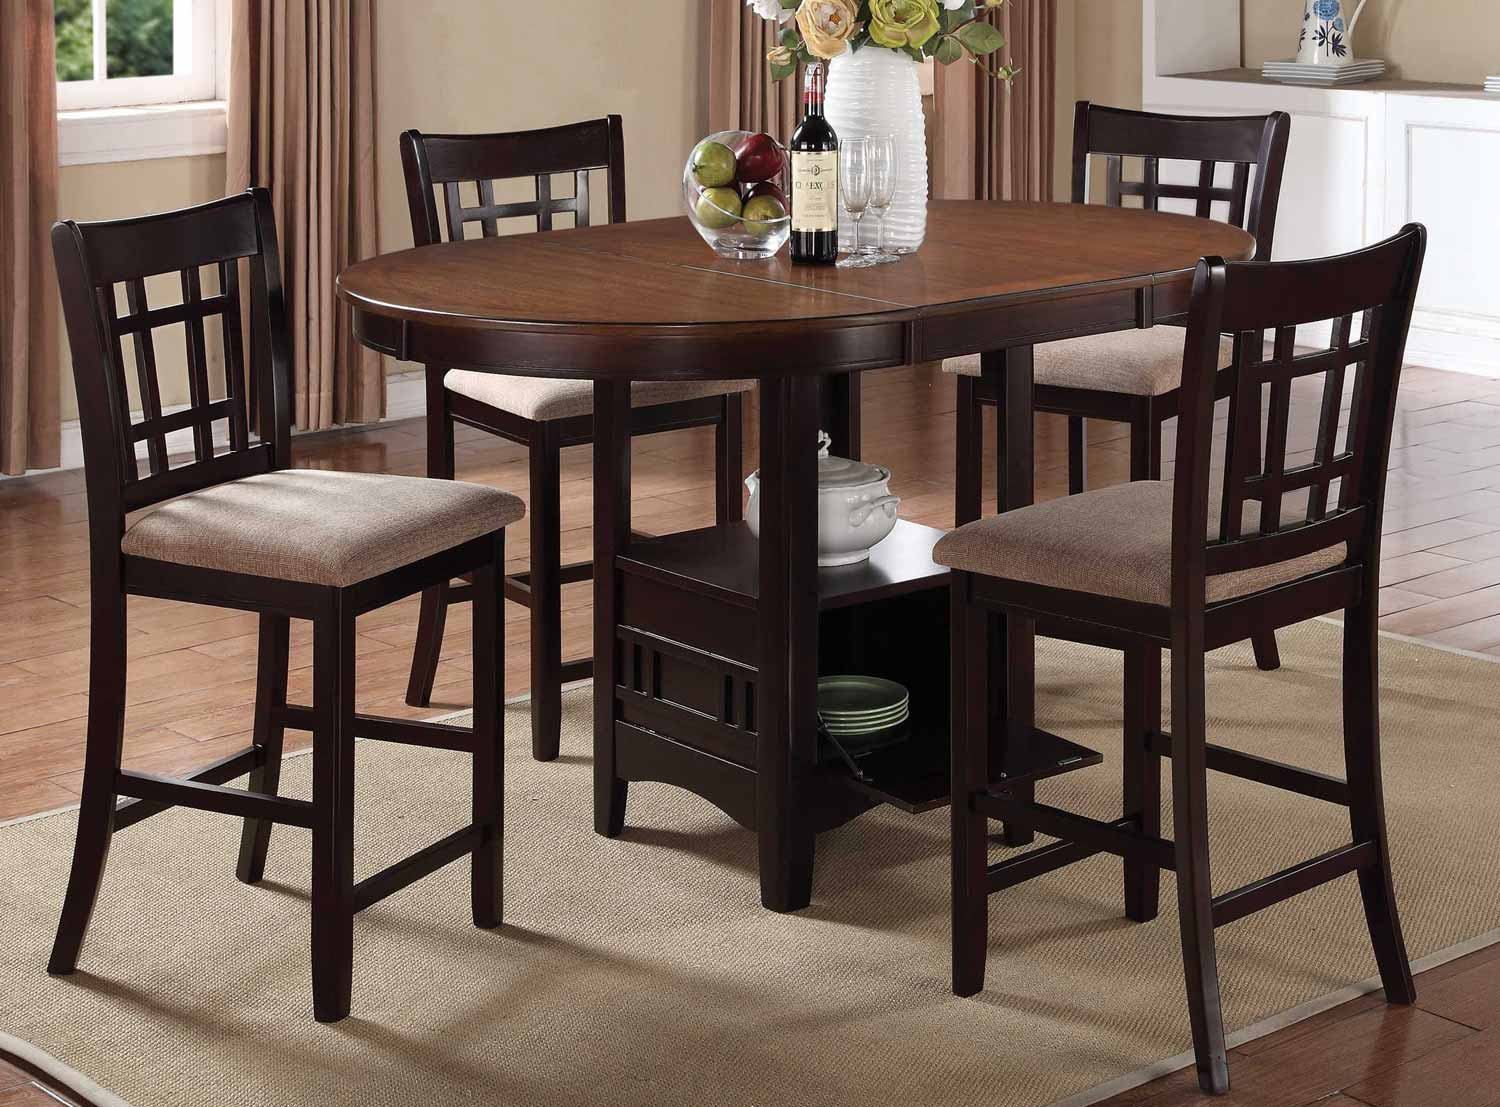 Coaster Lavon Counter Height Dining Set   Light Chestnut/Espresso